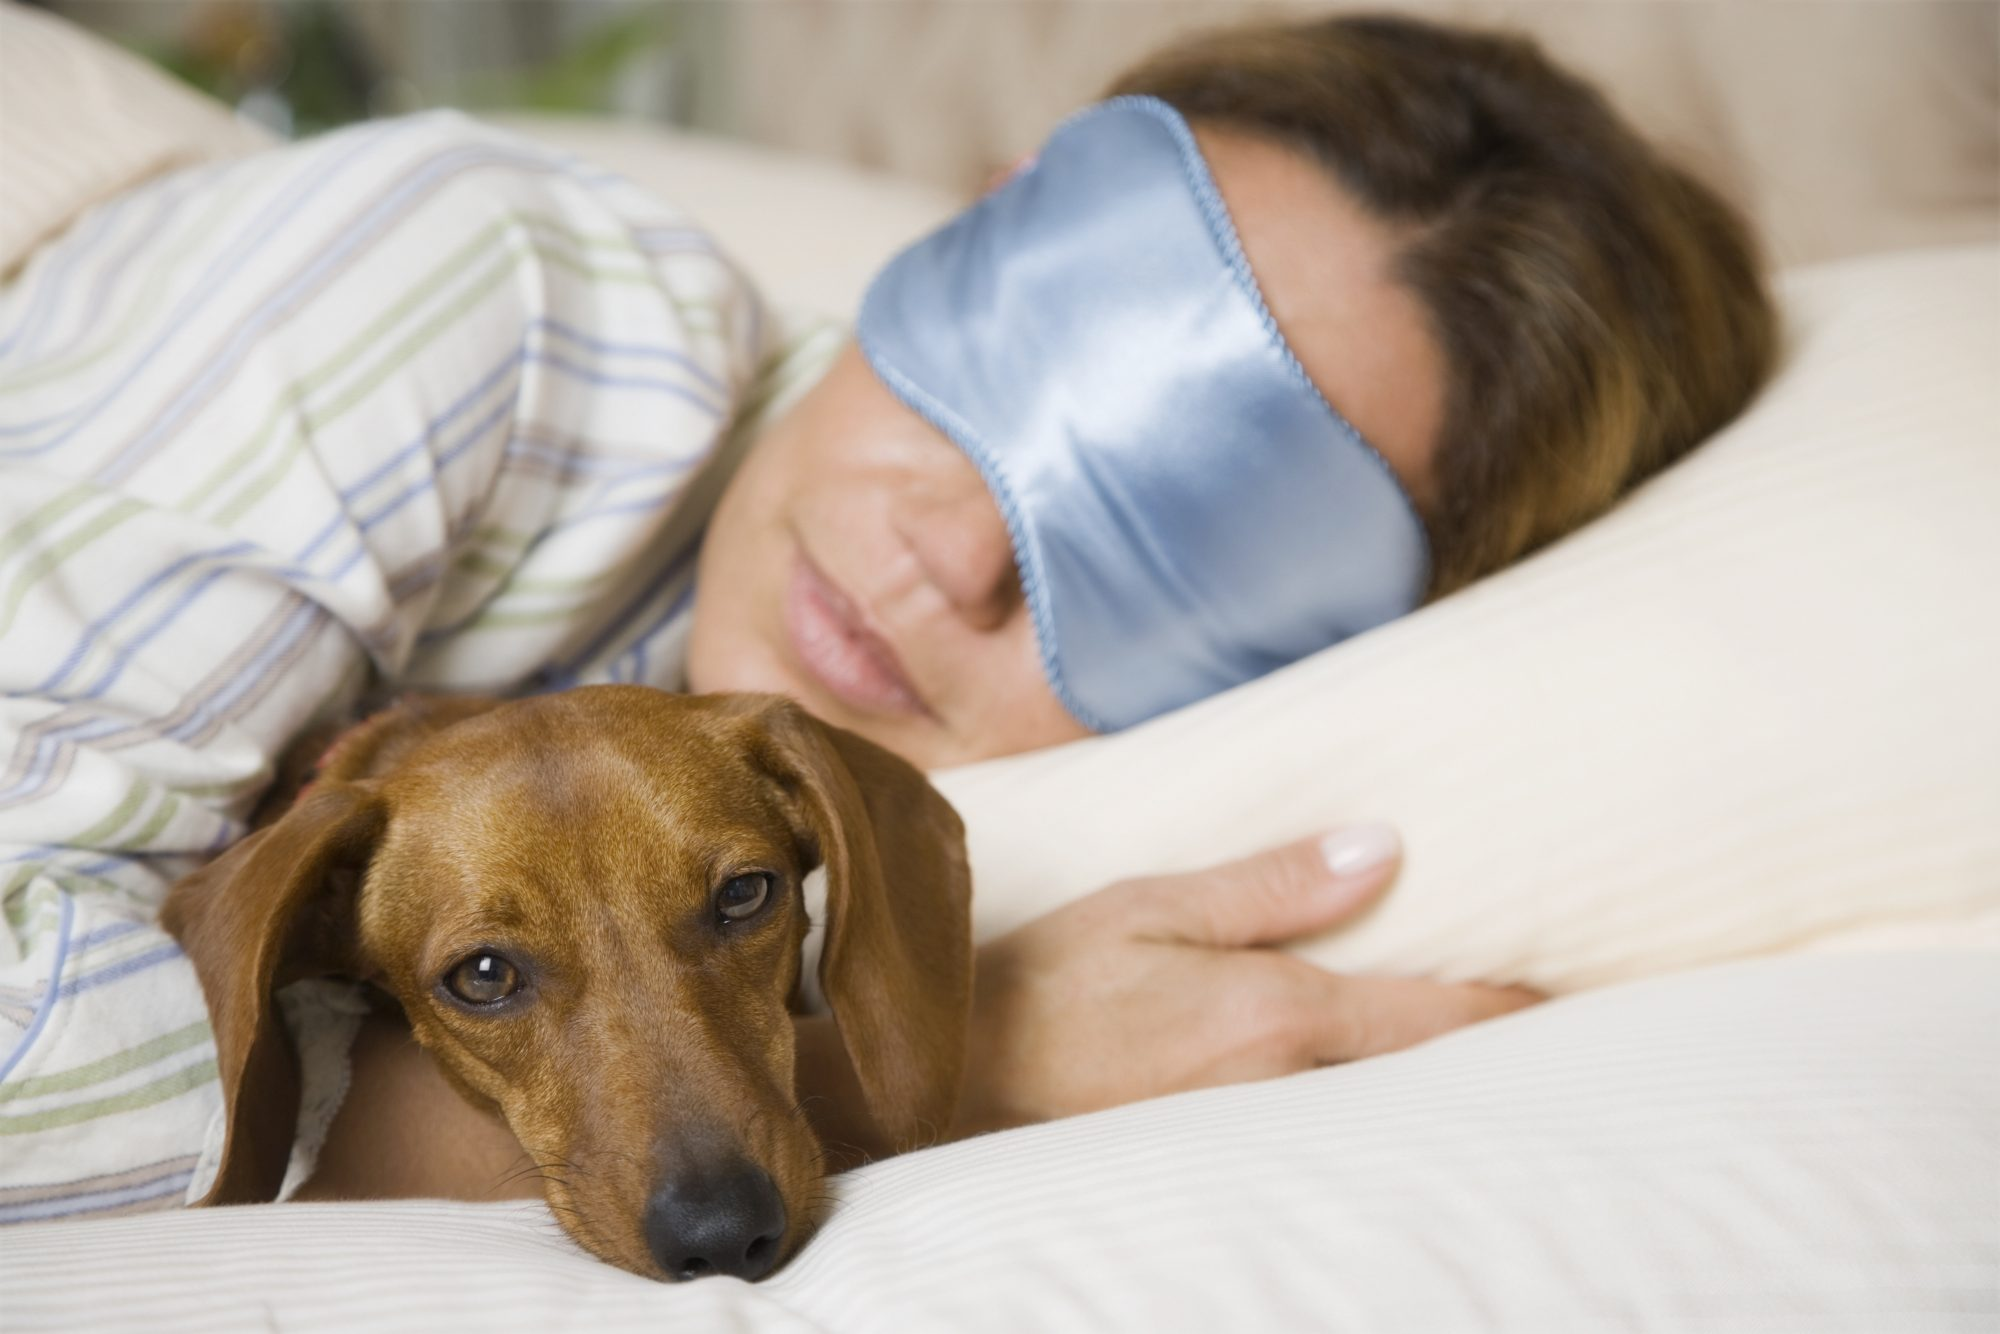 Woman in Blue Mask Sleeping with Dog